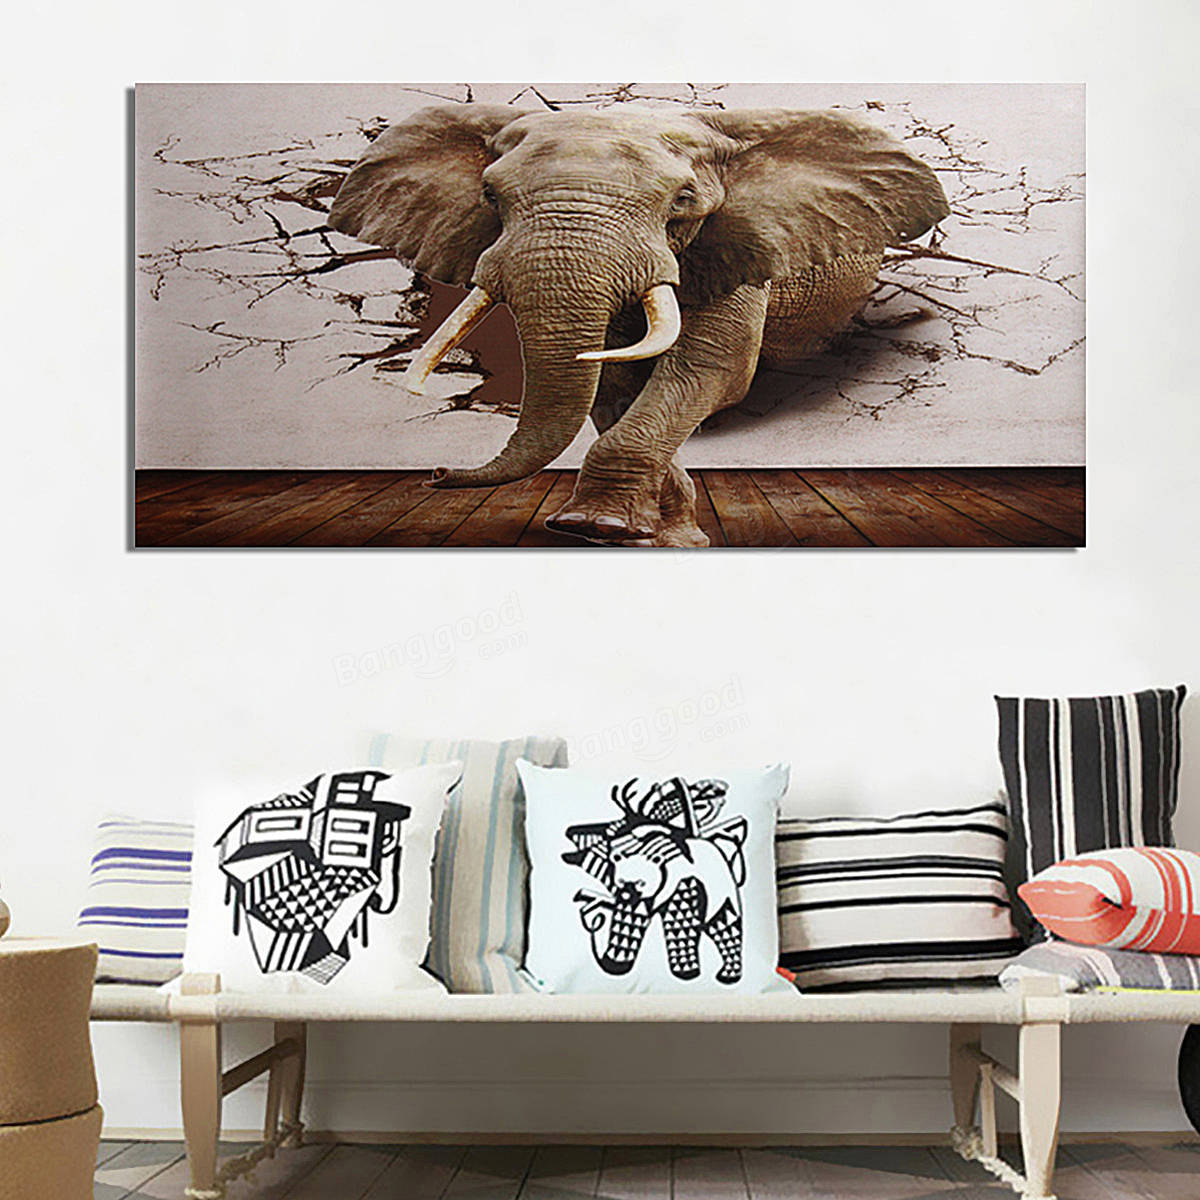 Ramie 3D Large Elephant Wall Paper Non Woven Roll Wall Murals Home Decorations